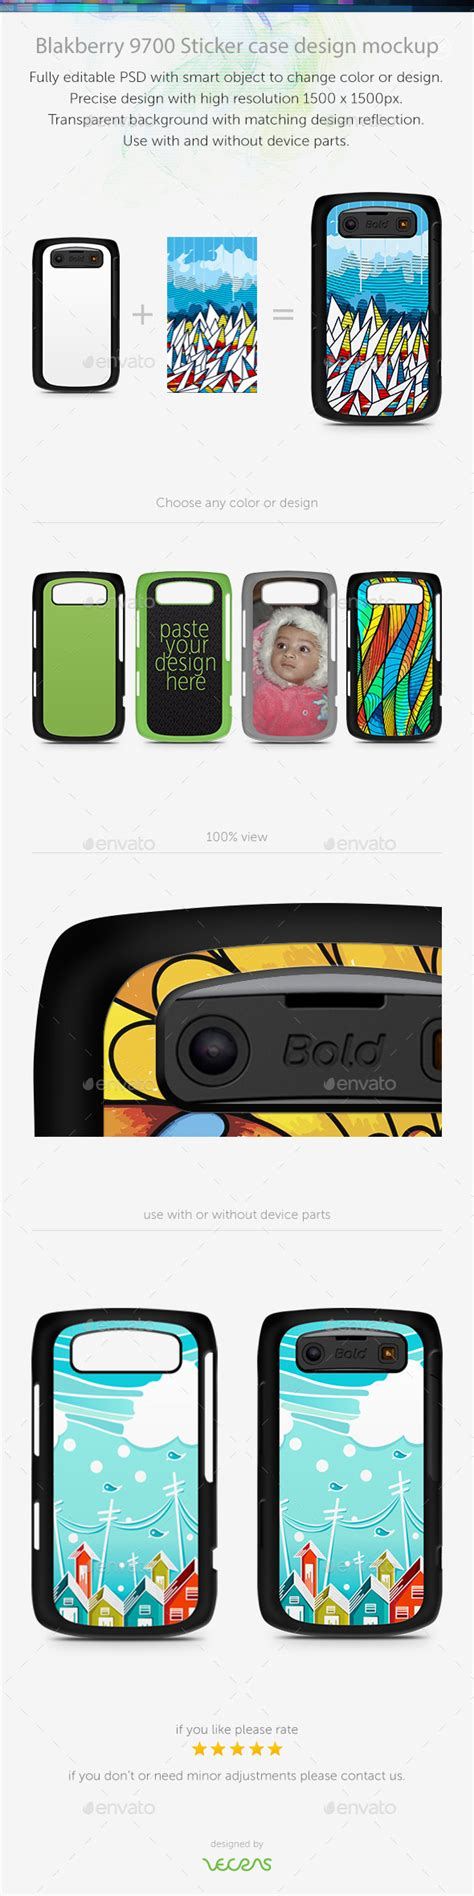 Illustration For Blackberry Q10 blackberry q10 psd 187 tinkytyler org stock photos graphics